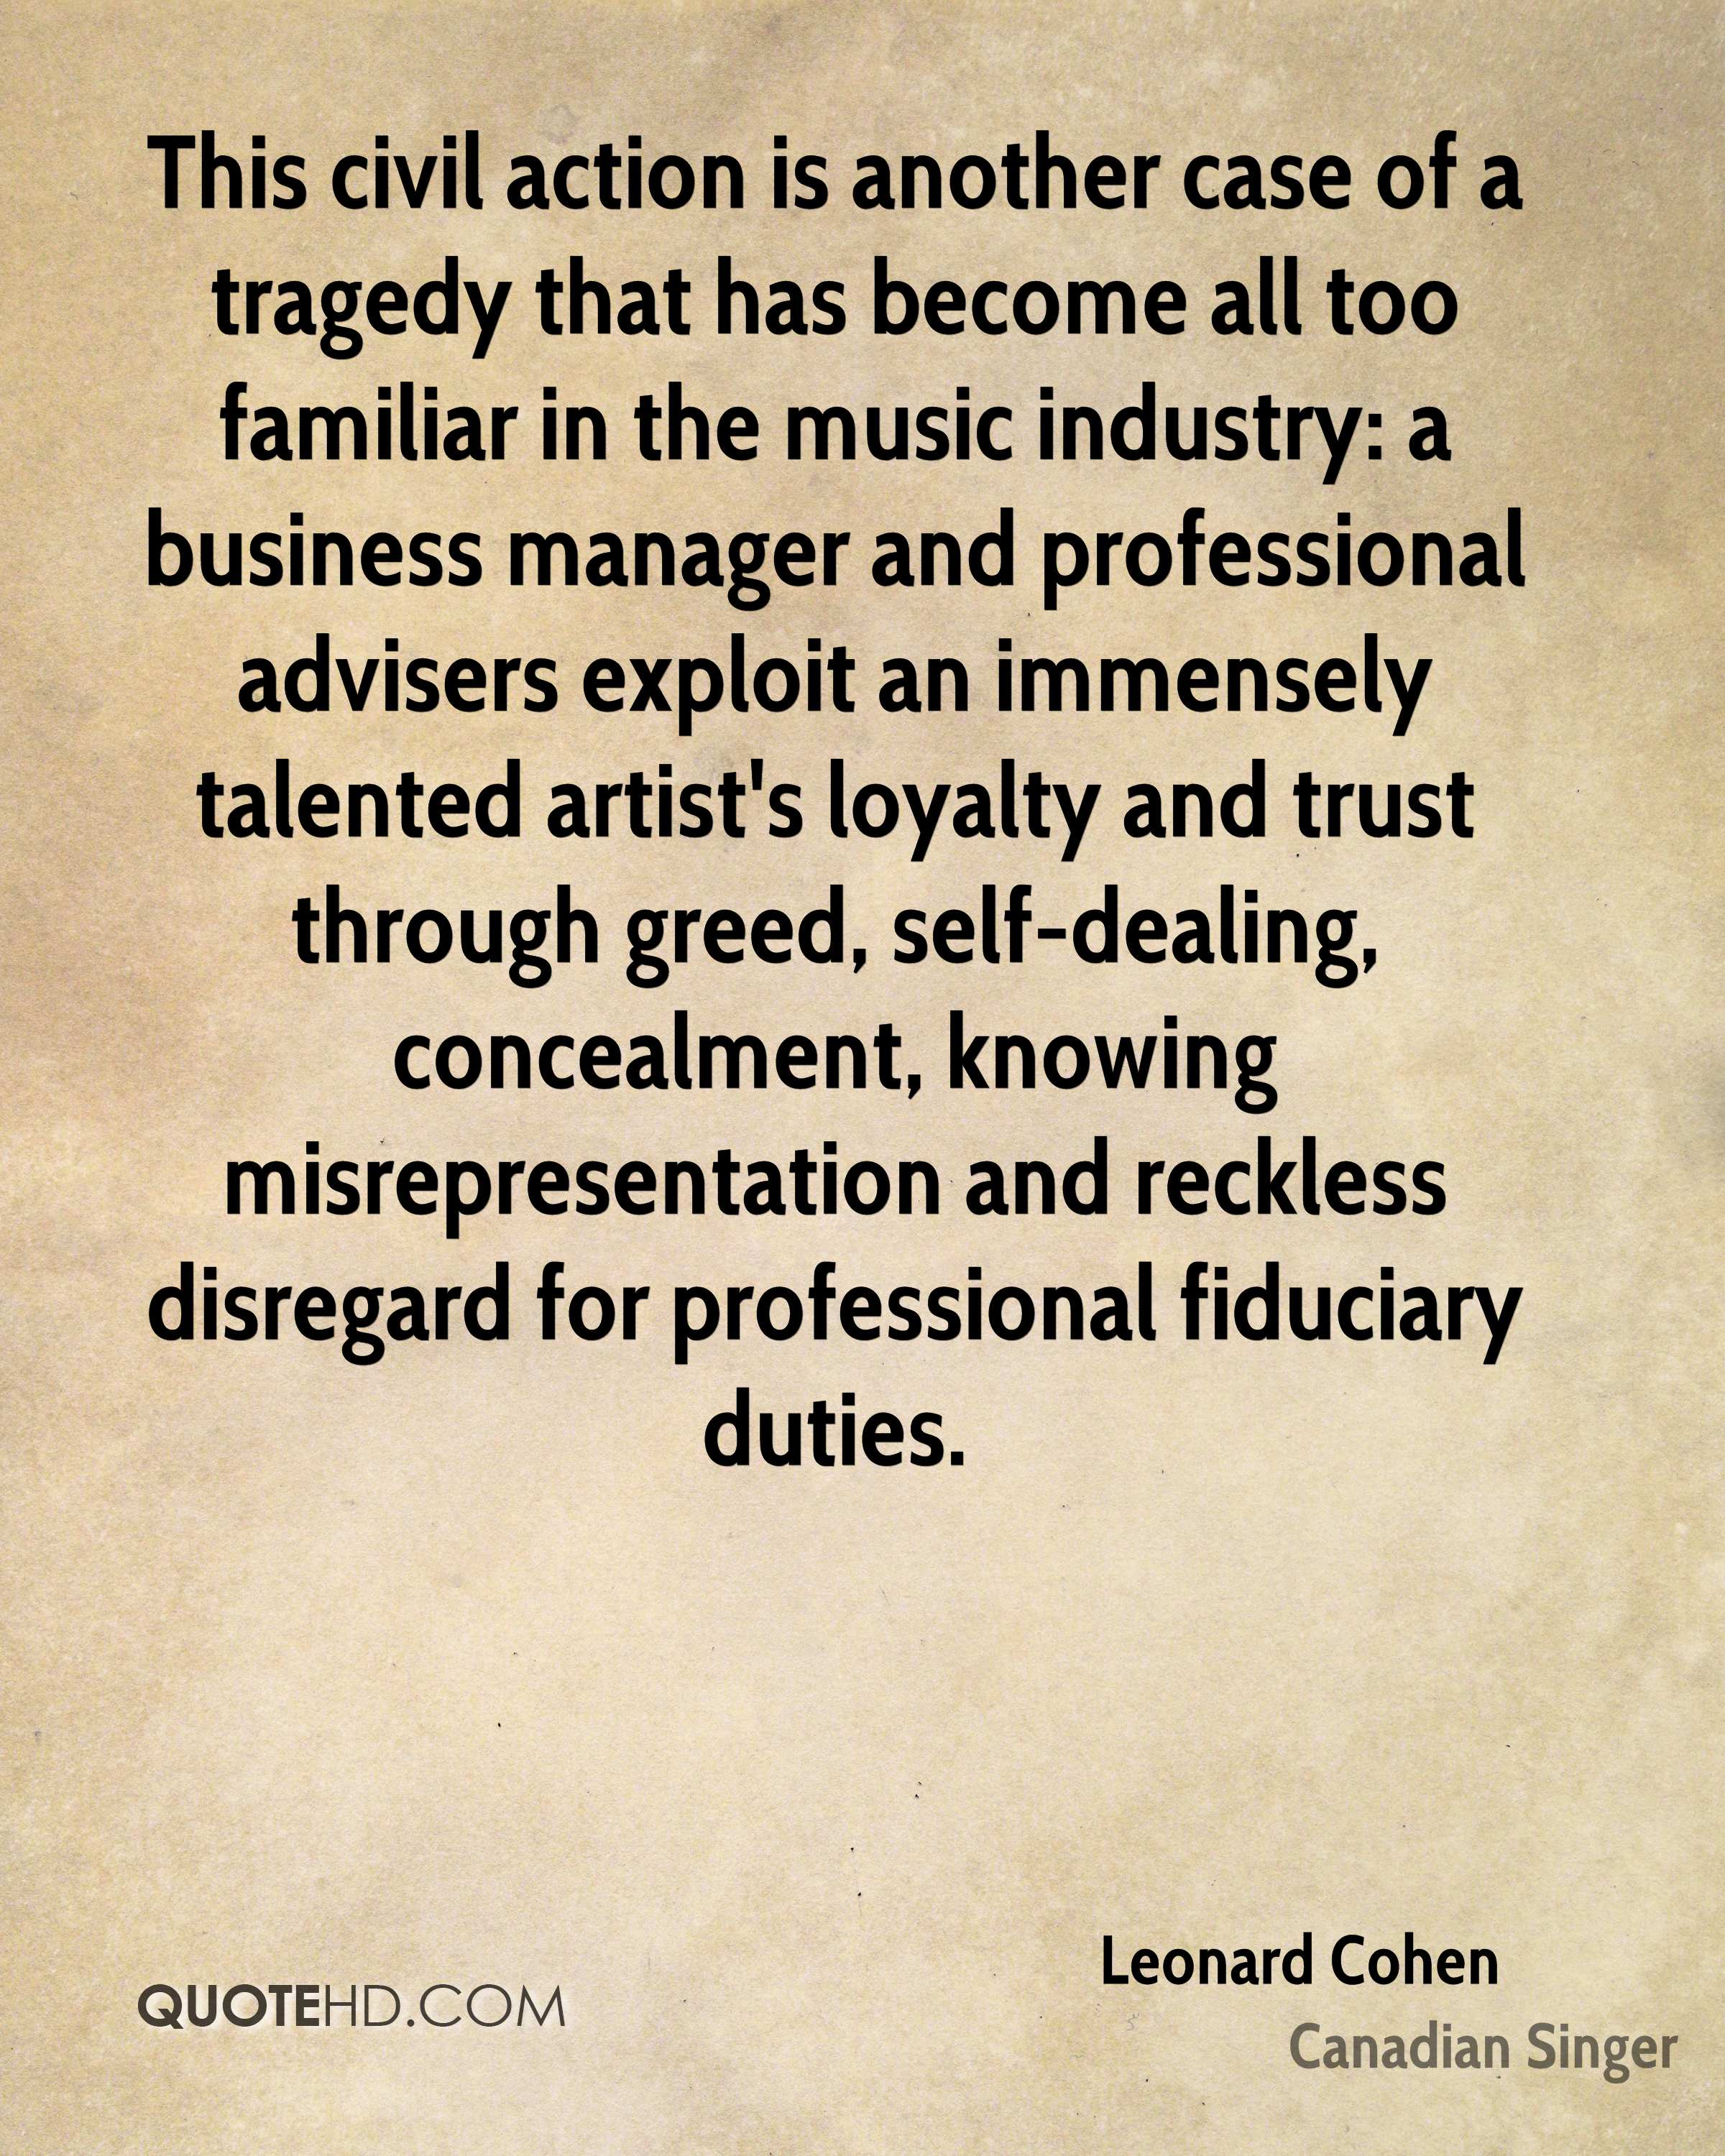 This civil action is another case of a tragedy that has become all too familiar in the music industry: a business manager and professional advisers exploit an immensely talented artist's loyalty and trust through greed, self-dealing, concealment, knowing misrepresentation and reckless disregard for professional fiduciary duties.